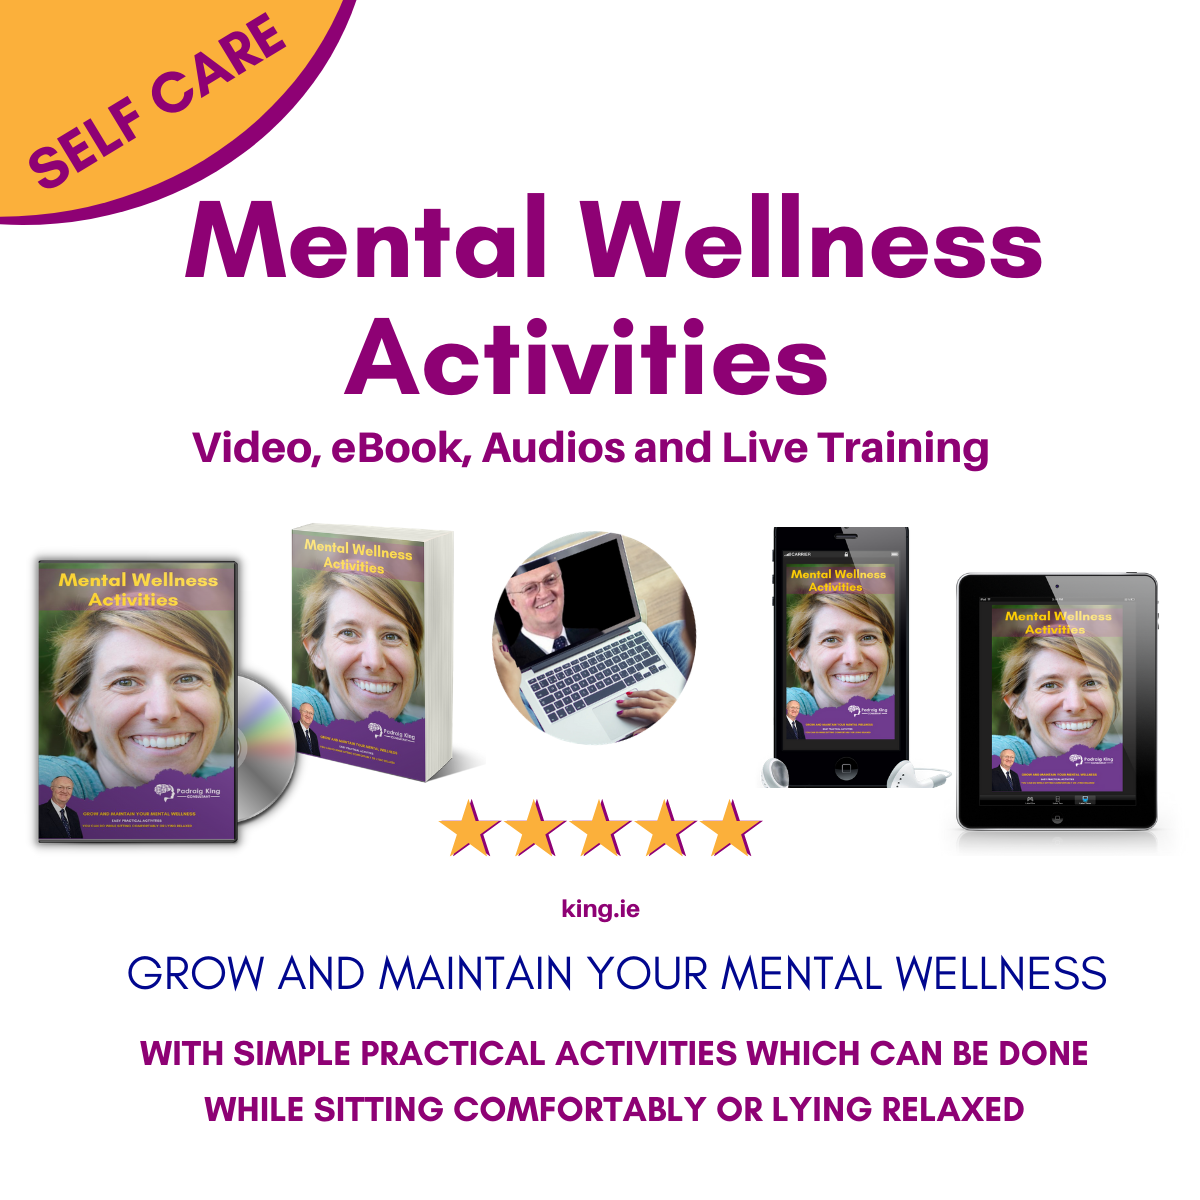 SElf Care Mental Wellness Activities from Padraig King